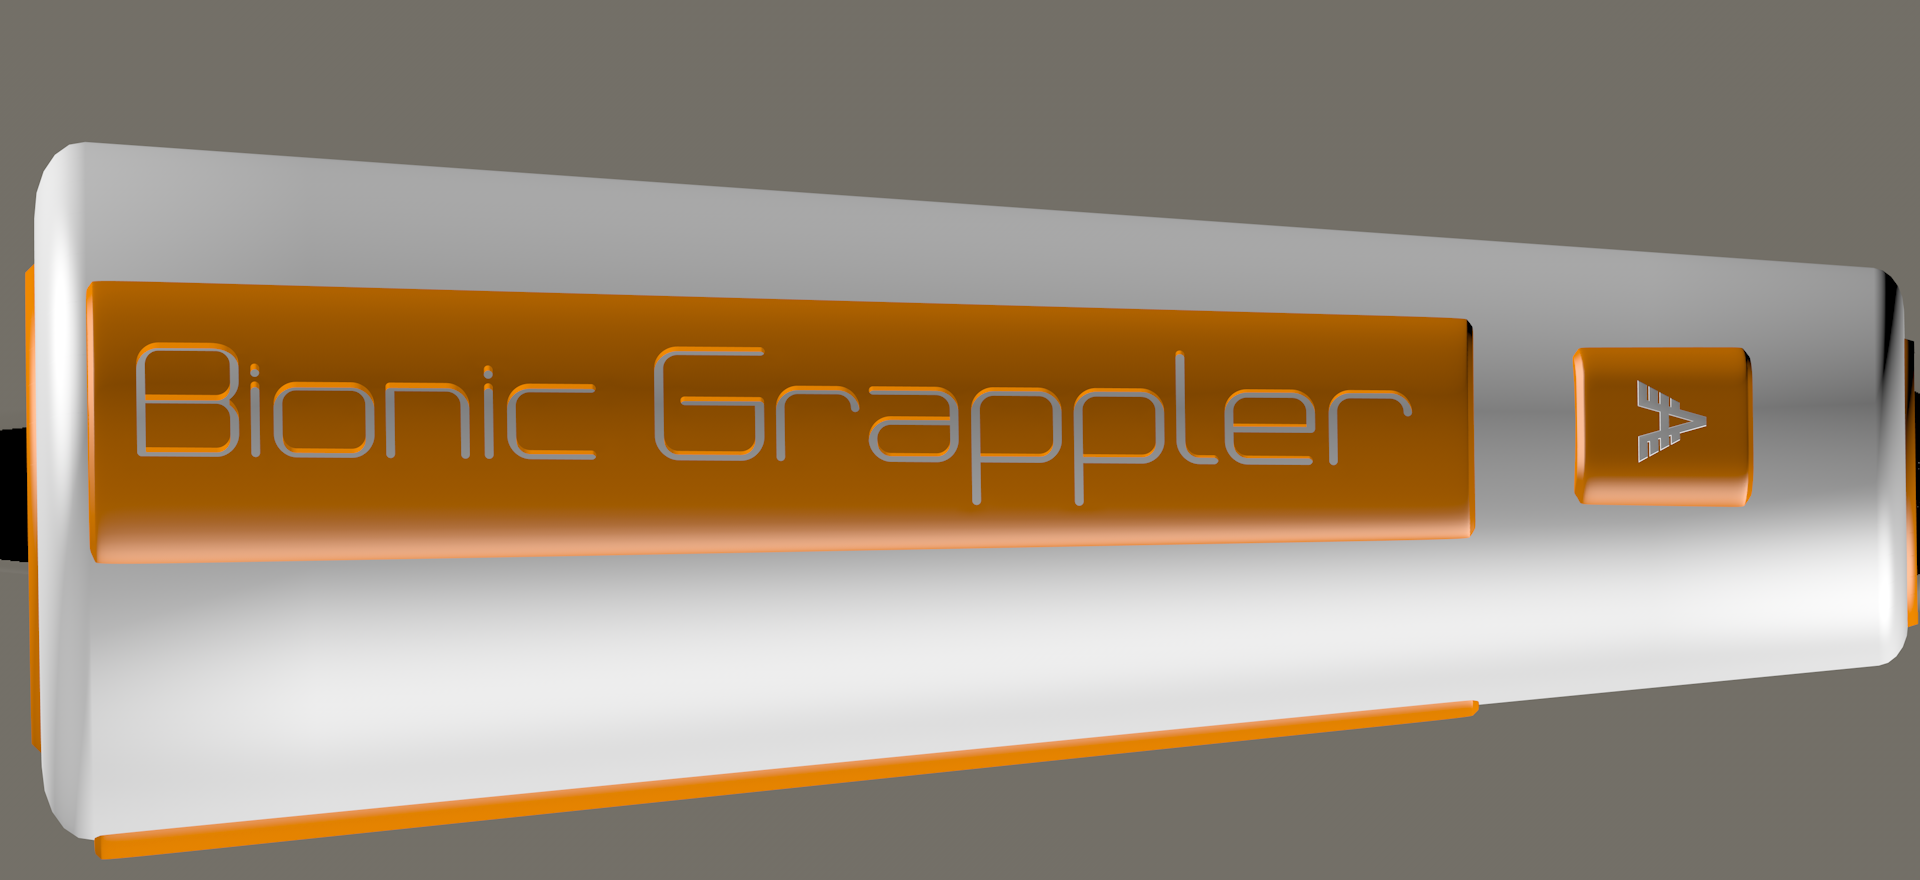 The Bionic Grappler